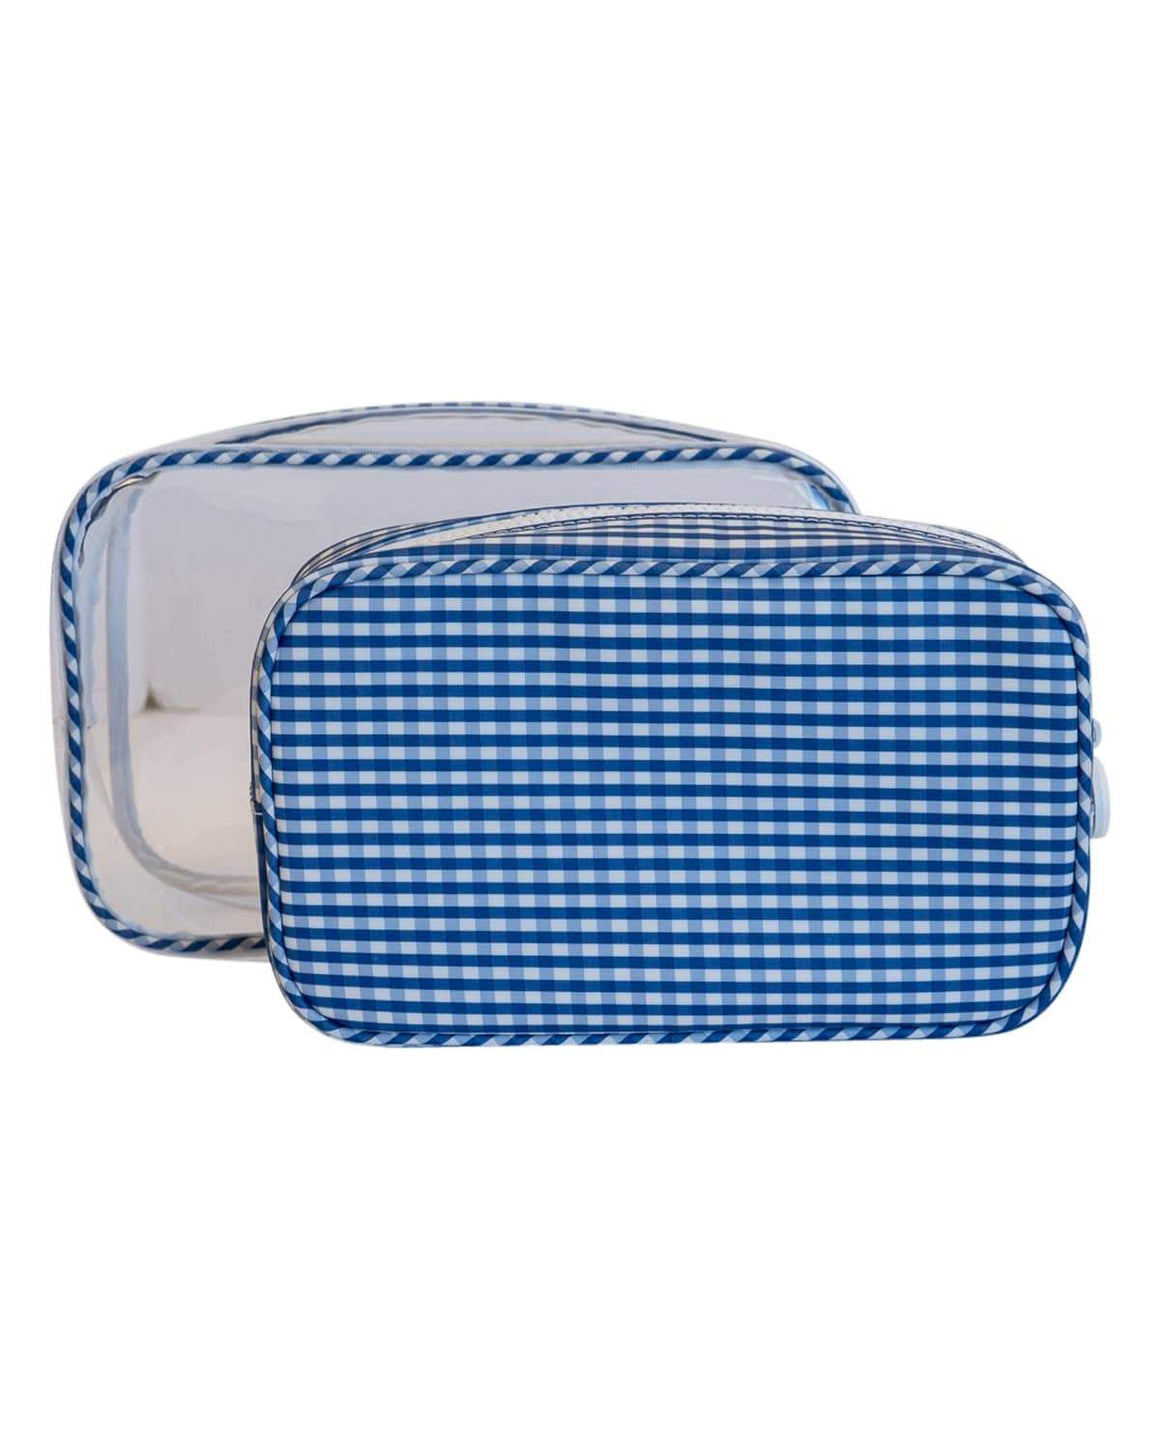 Clear Duo Gingham Travel Bag Set - more colors available - The Preppy Bunny